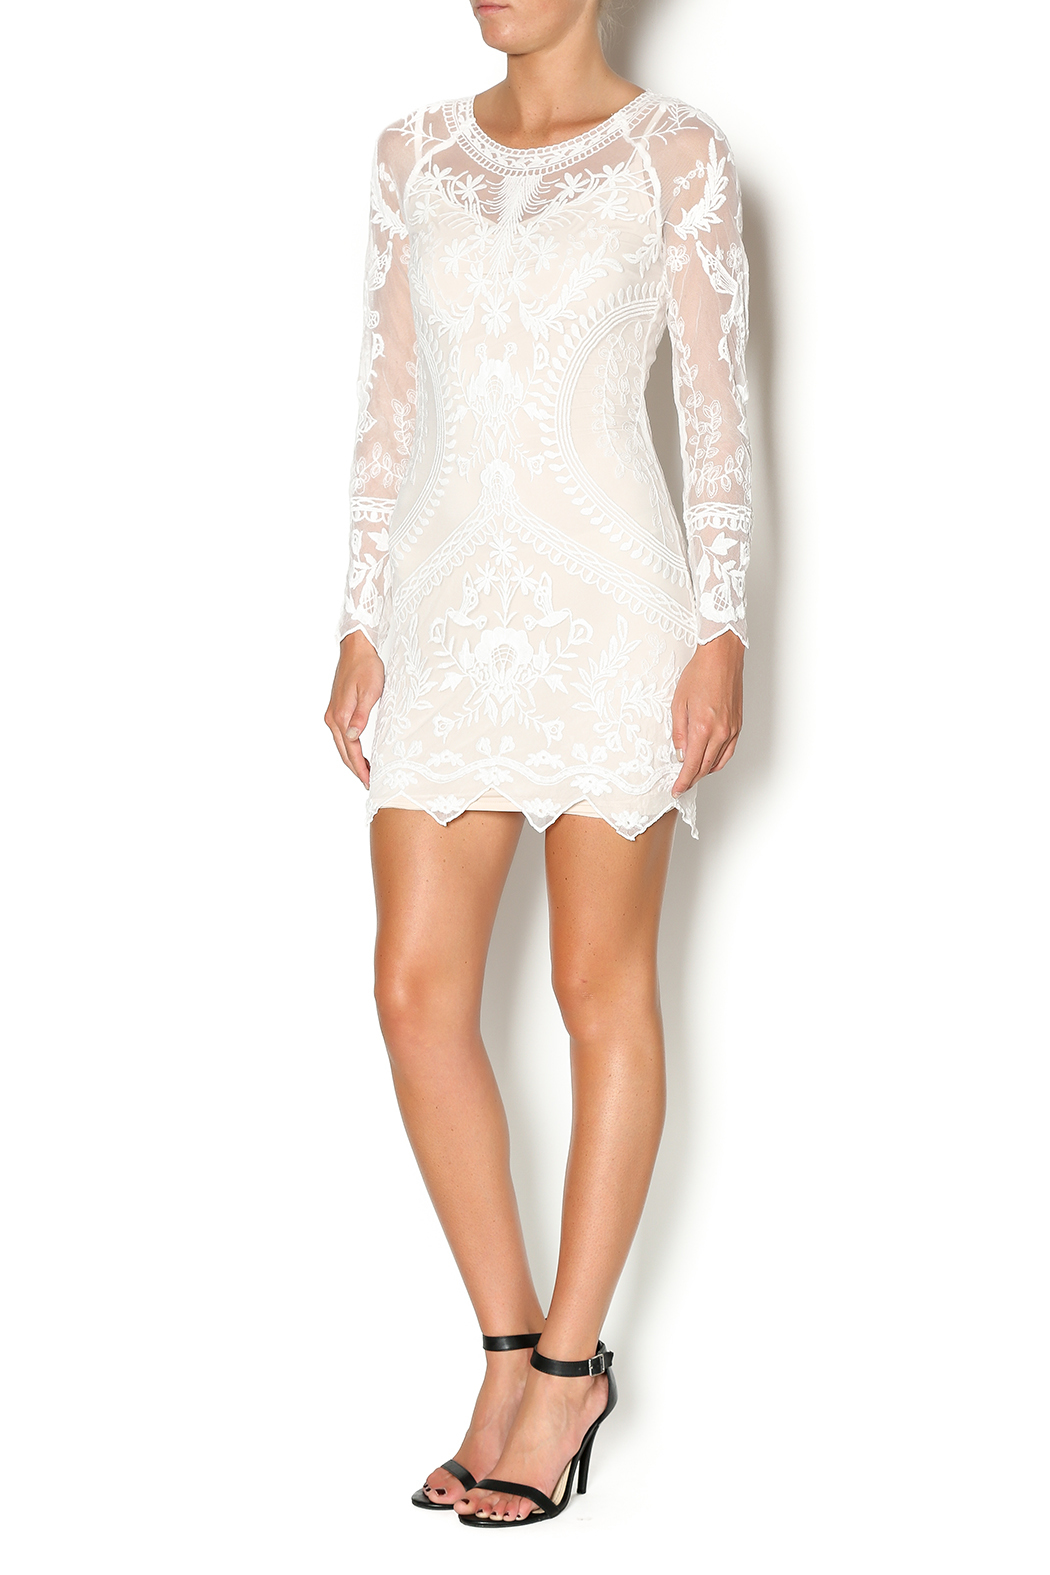 Honey Punch White Lace Dress from Los Angeles by Rich ...